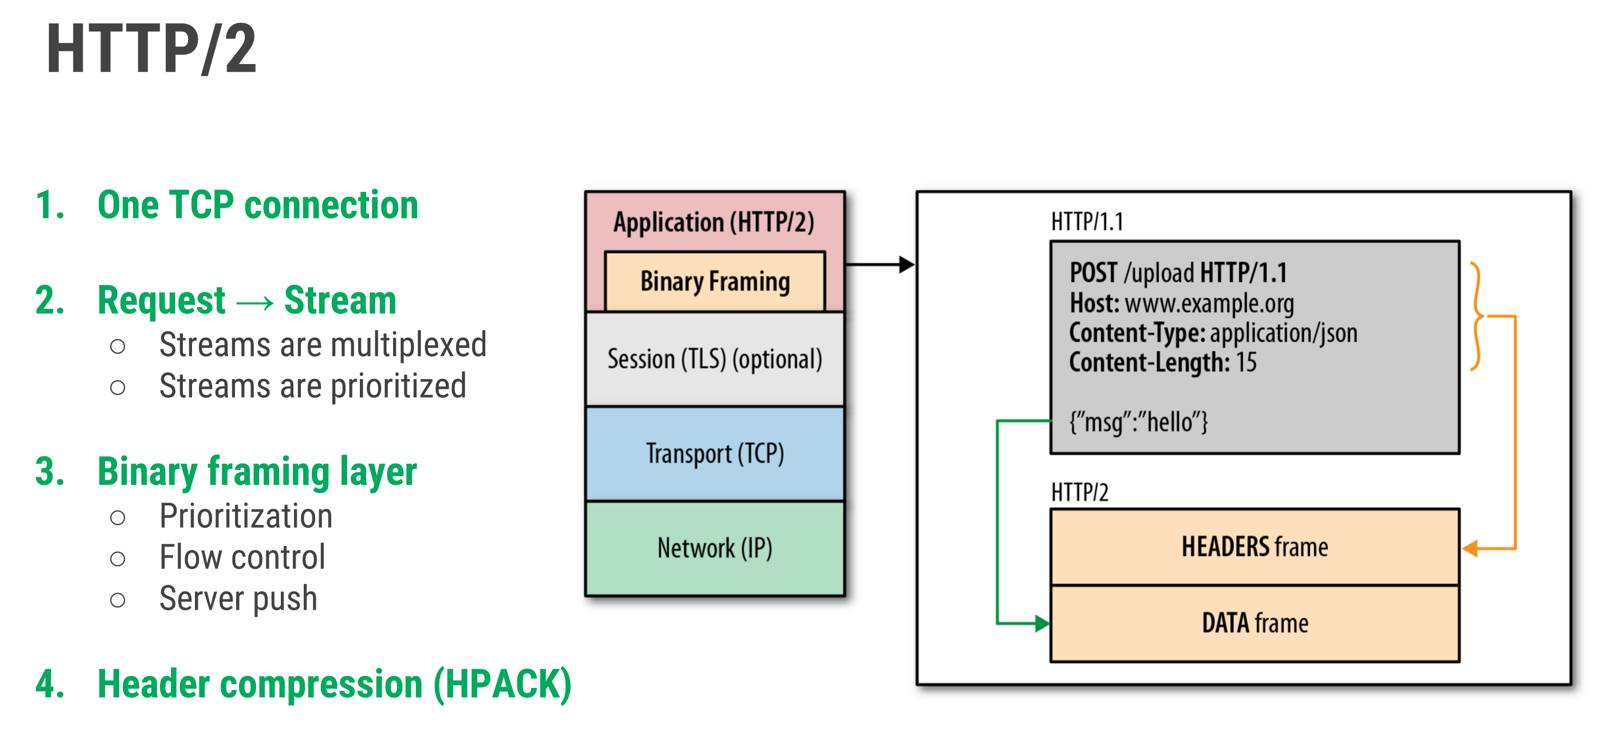 Benefits For REST APIs with HTTP/2